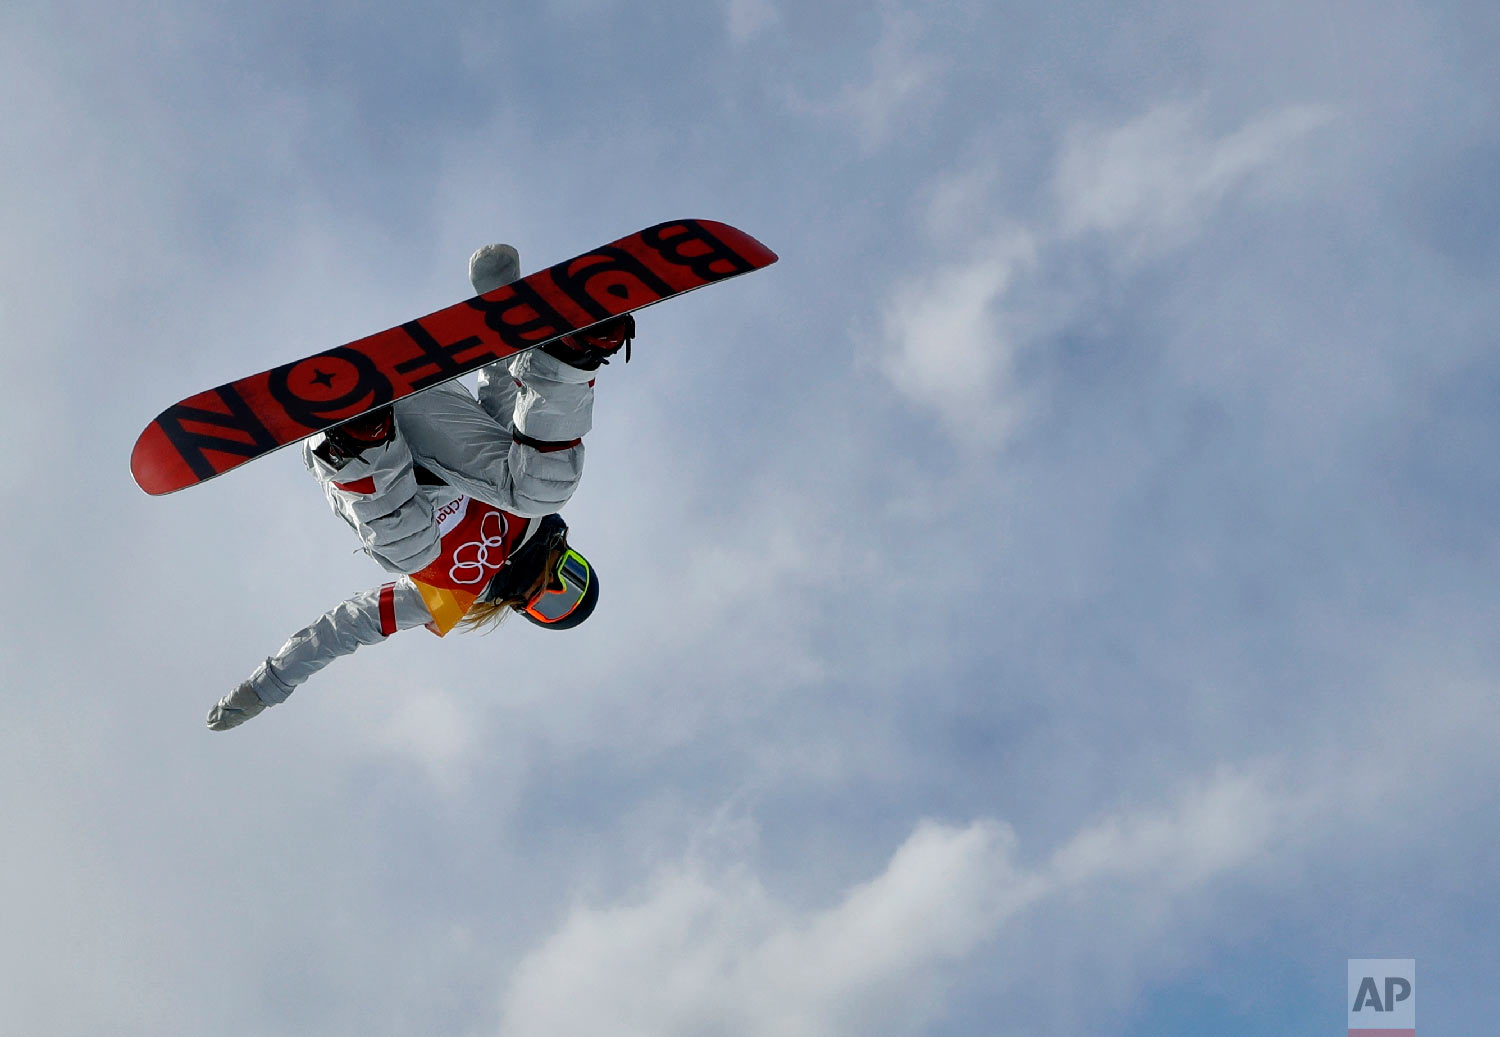 Chloe Kim, of the United States, jumps during the women's halfpipe qualifying at Phoenix Snow Park at the 2018 Winter Olympics in Pyeongchang, South Korea, Monday, Feb. 12, 2018. (AP Photo/Kin Cheung)